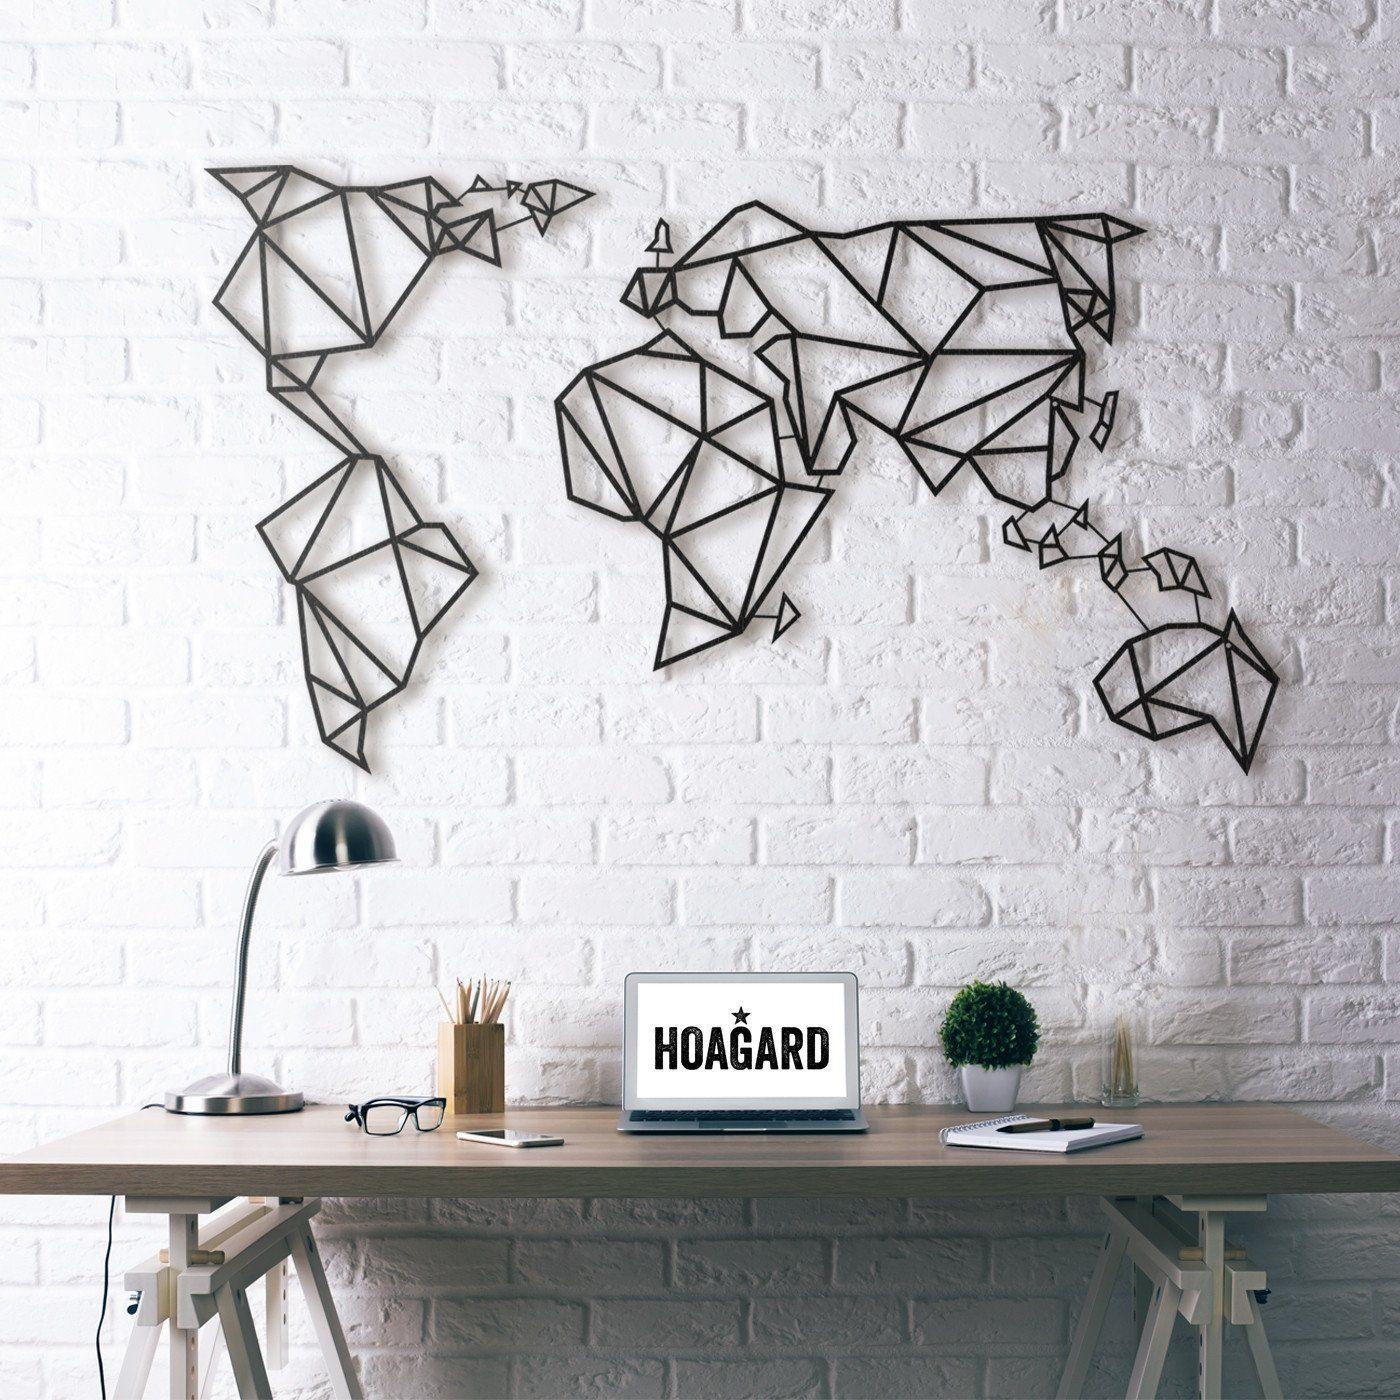 Hogard wall art world map the castle pinterest walls room yeni metal poster world map hoagard gumiabroncs Choice Image